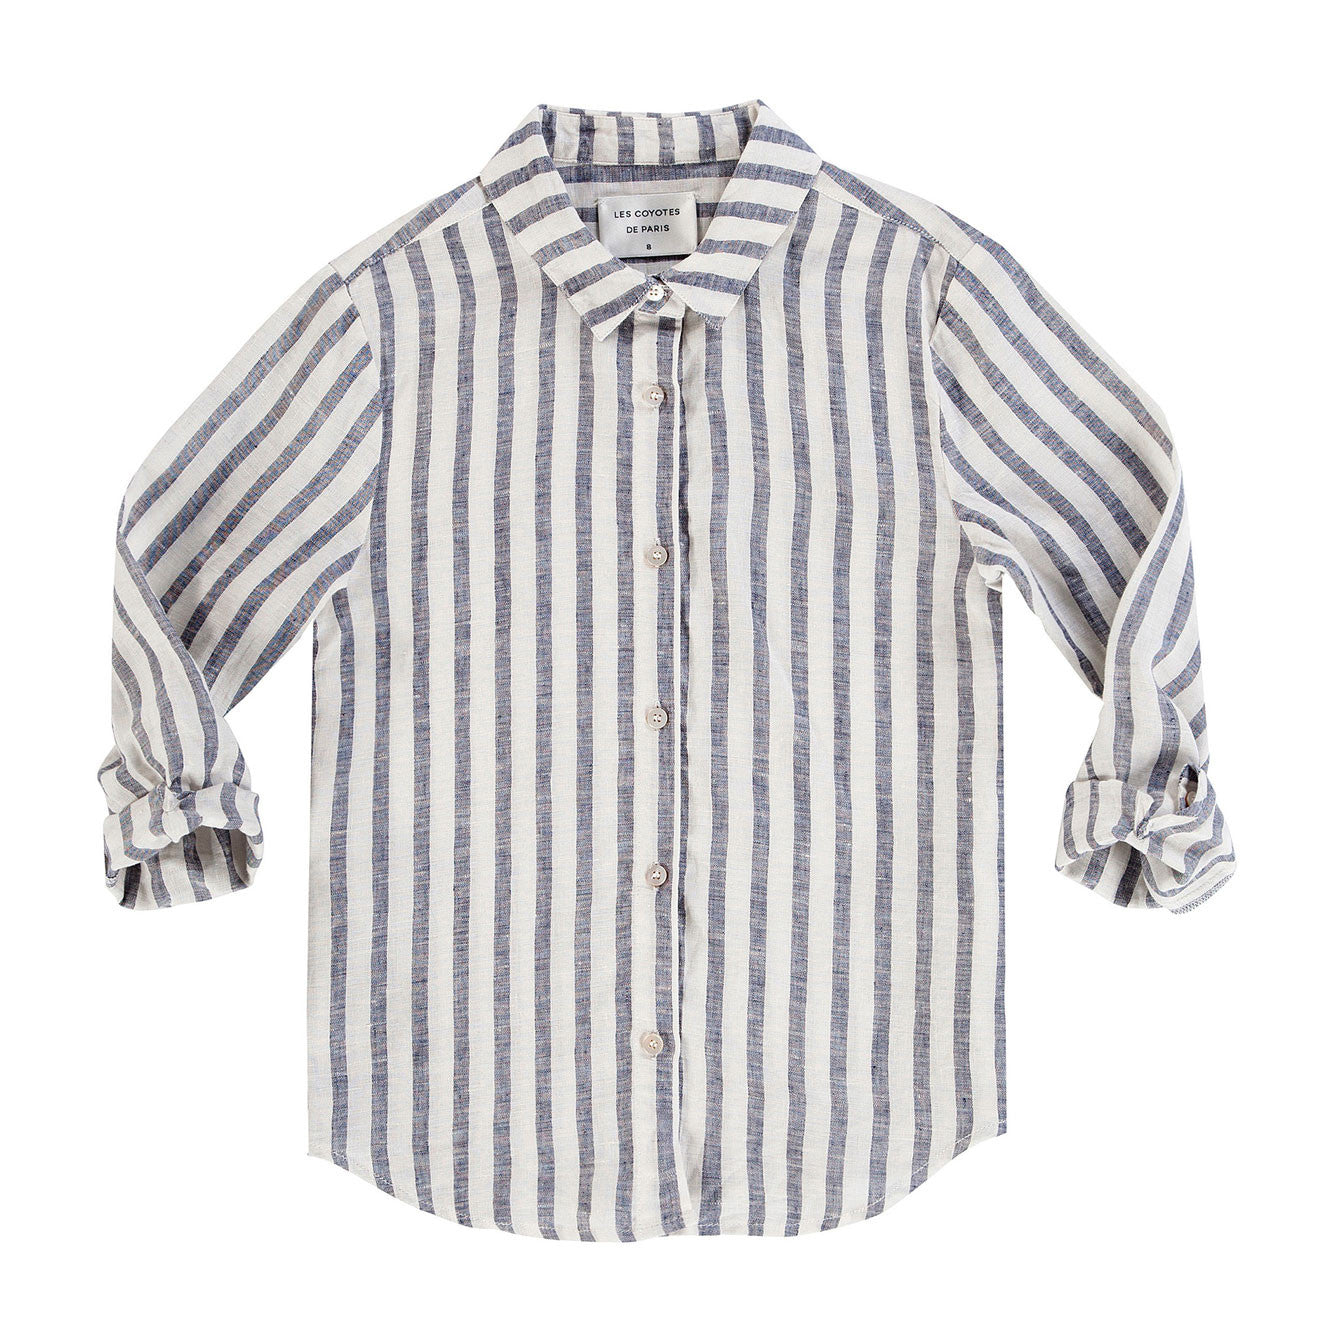 Les Coyotes De Paris Clarisse Striped Blouse - Ladida